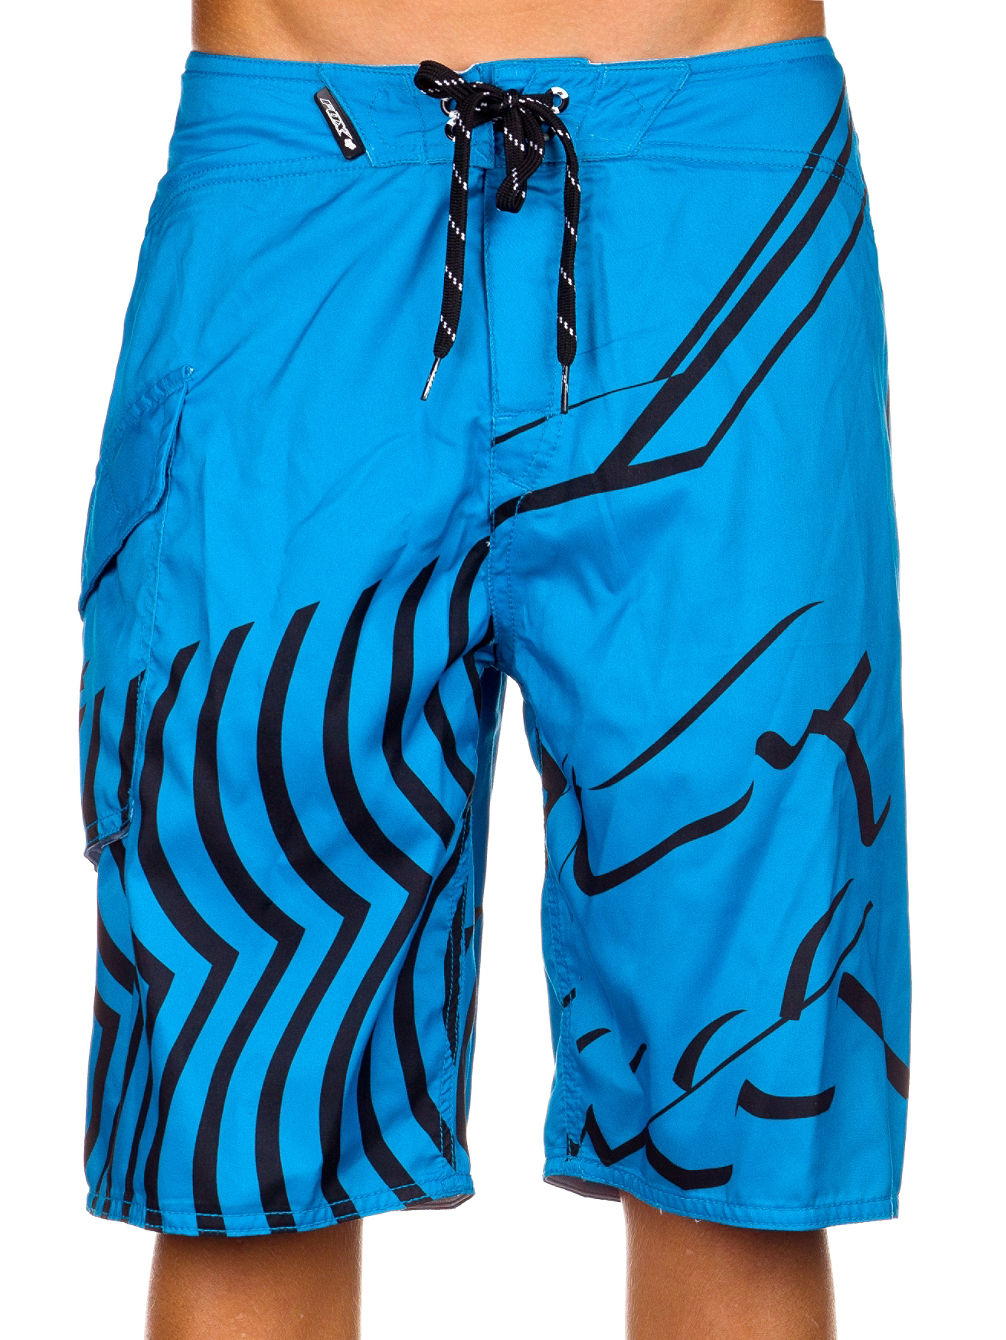 expandamonium-boardshort-youth